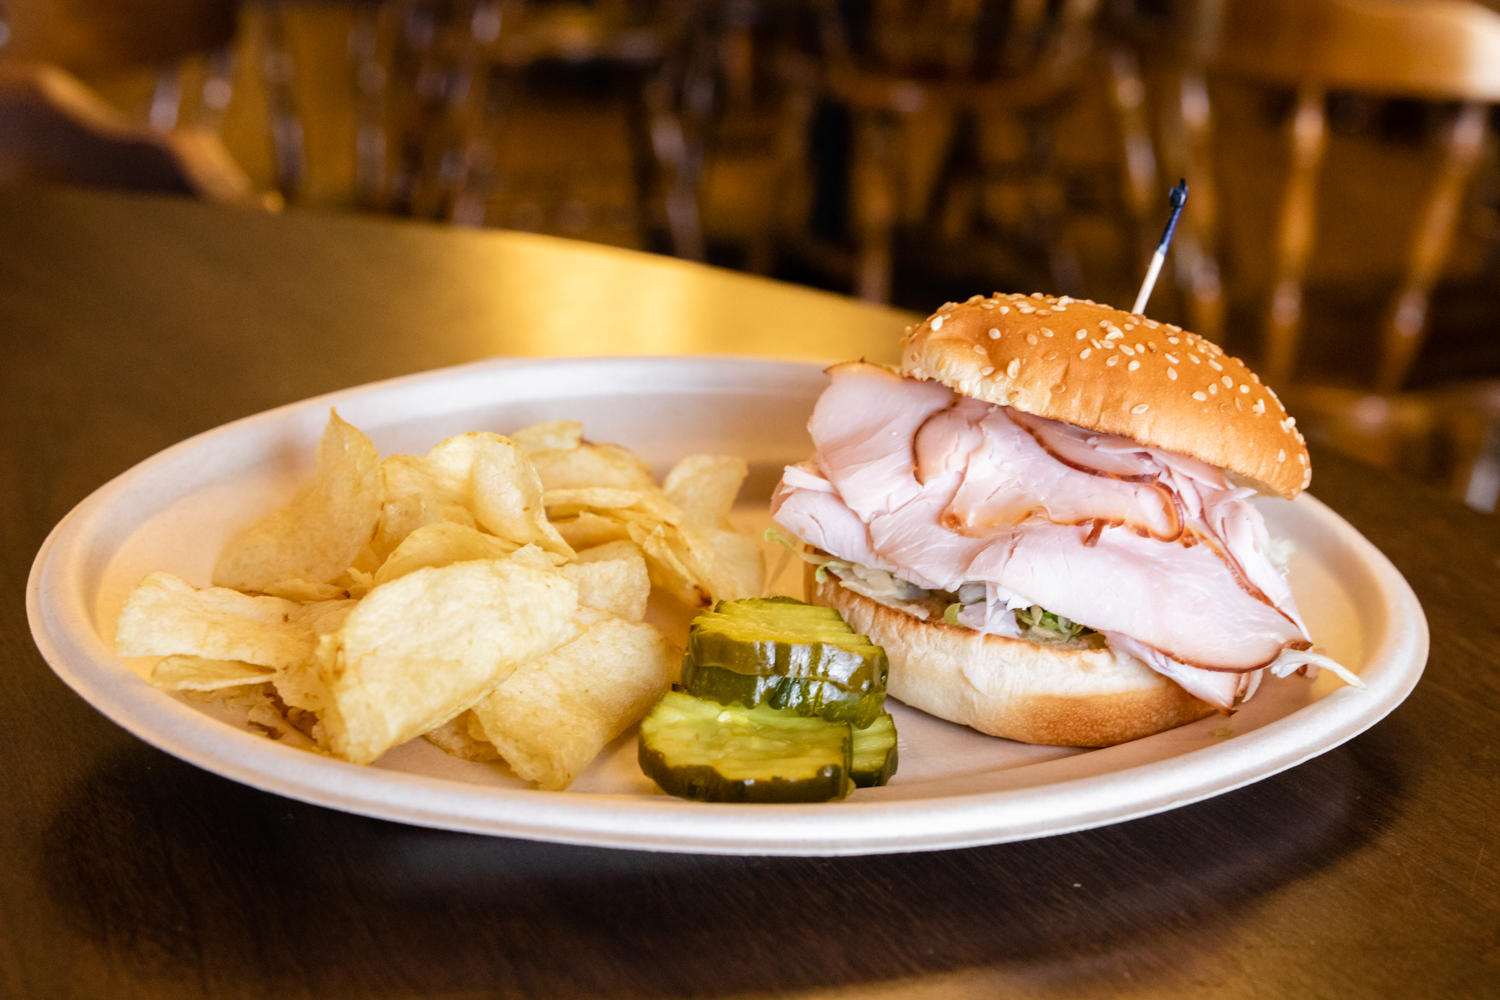 Turkey sandwich with side of chips and pickle on a dish